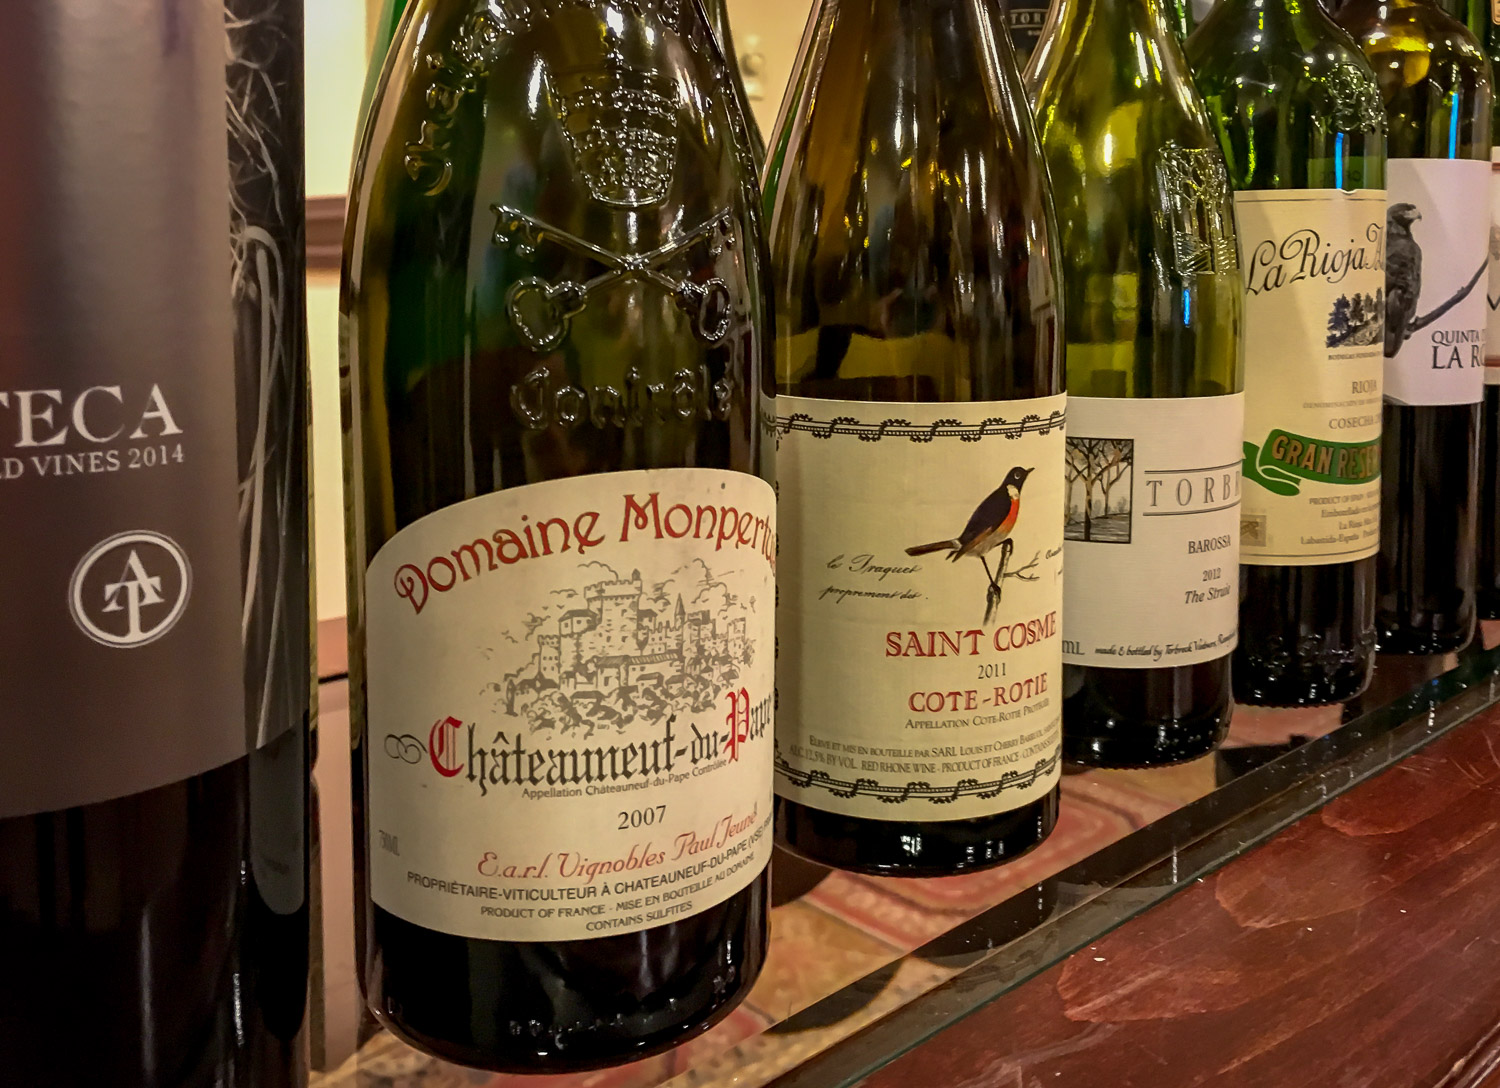 Tasting excellent wines is a part of the Fine Vintage approach to honing your evaluation skills (and it's fun, too!)